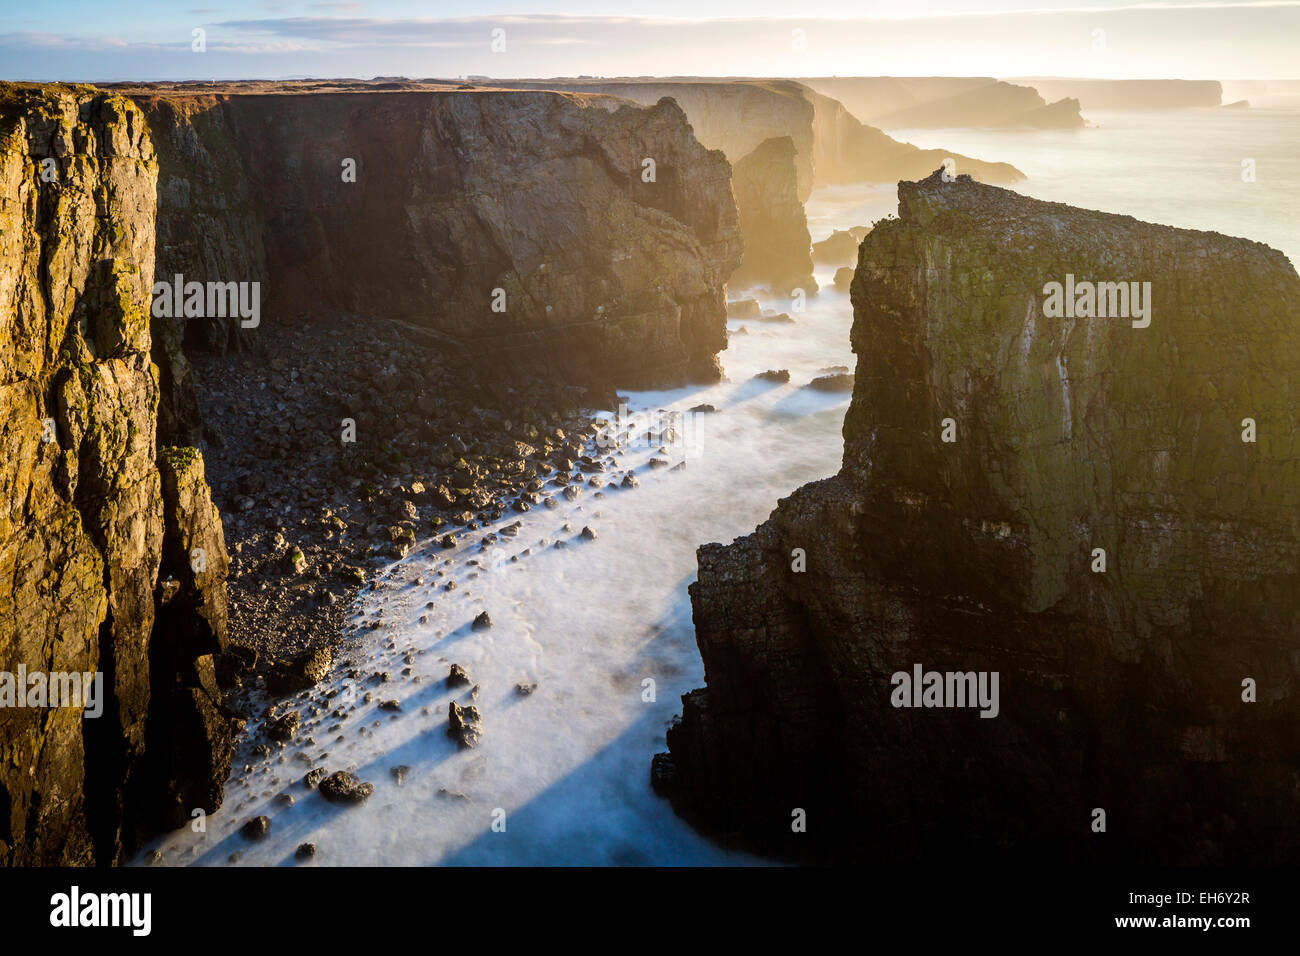 View towards Elegug Stack, Pembrokeshire Coast National Park, Merrion, Pembrokeshire, Wales, United Kingdom, Europe. - Stock Image